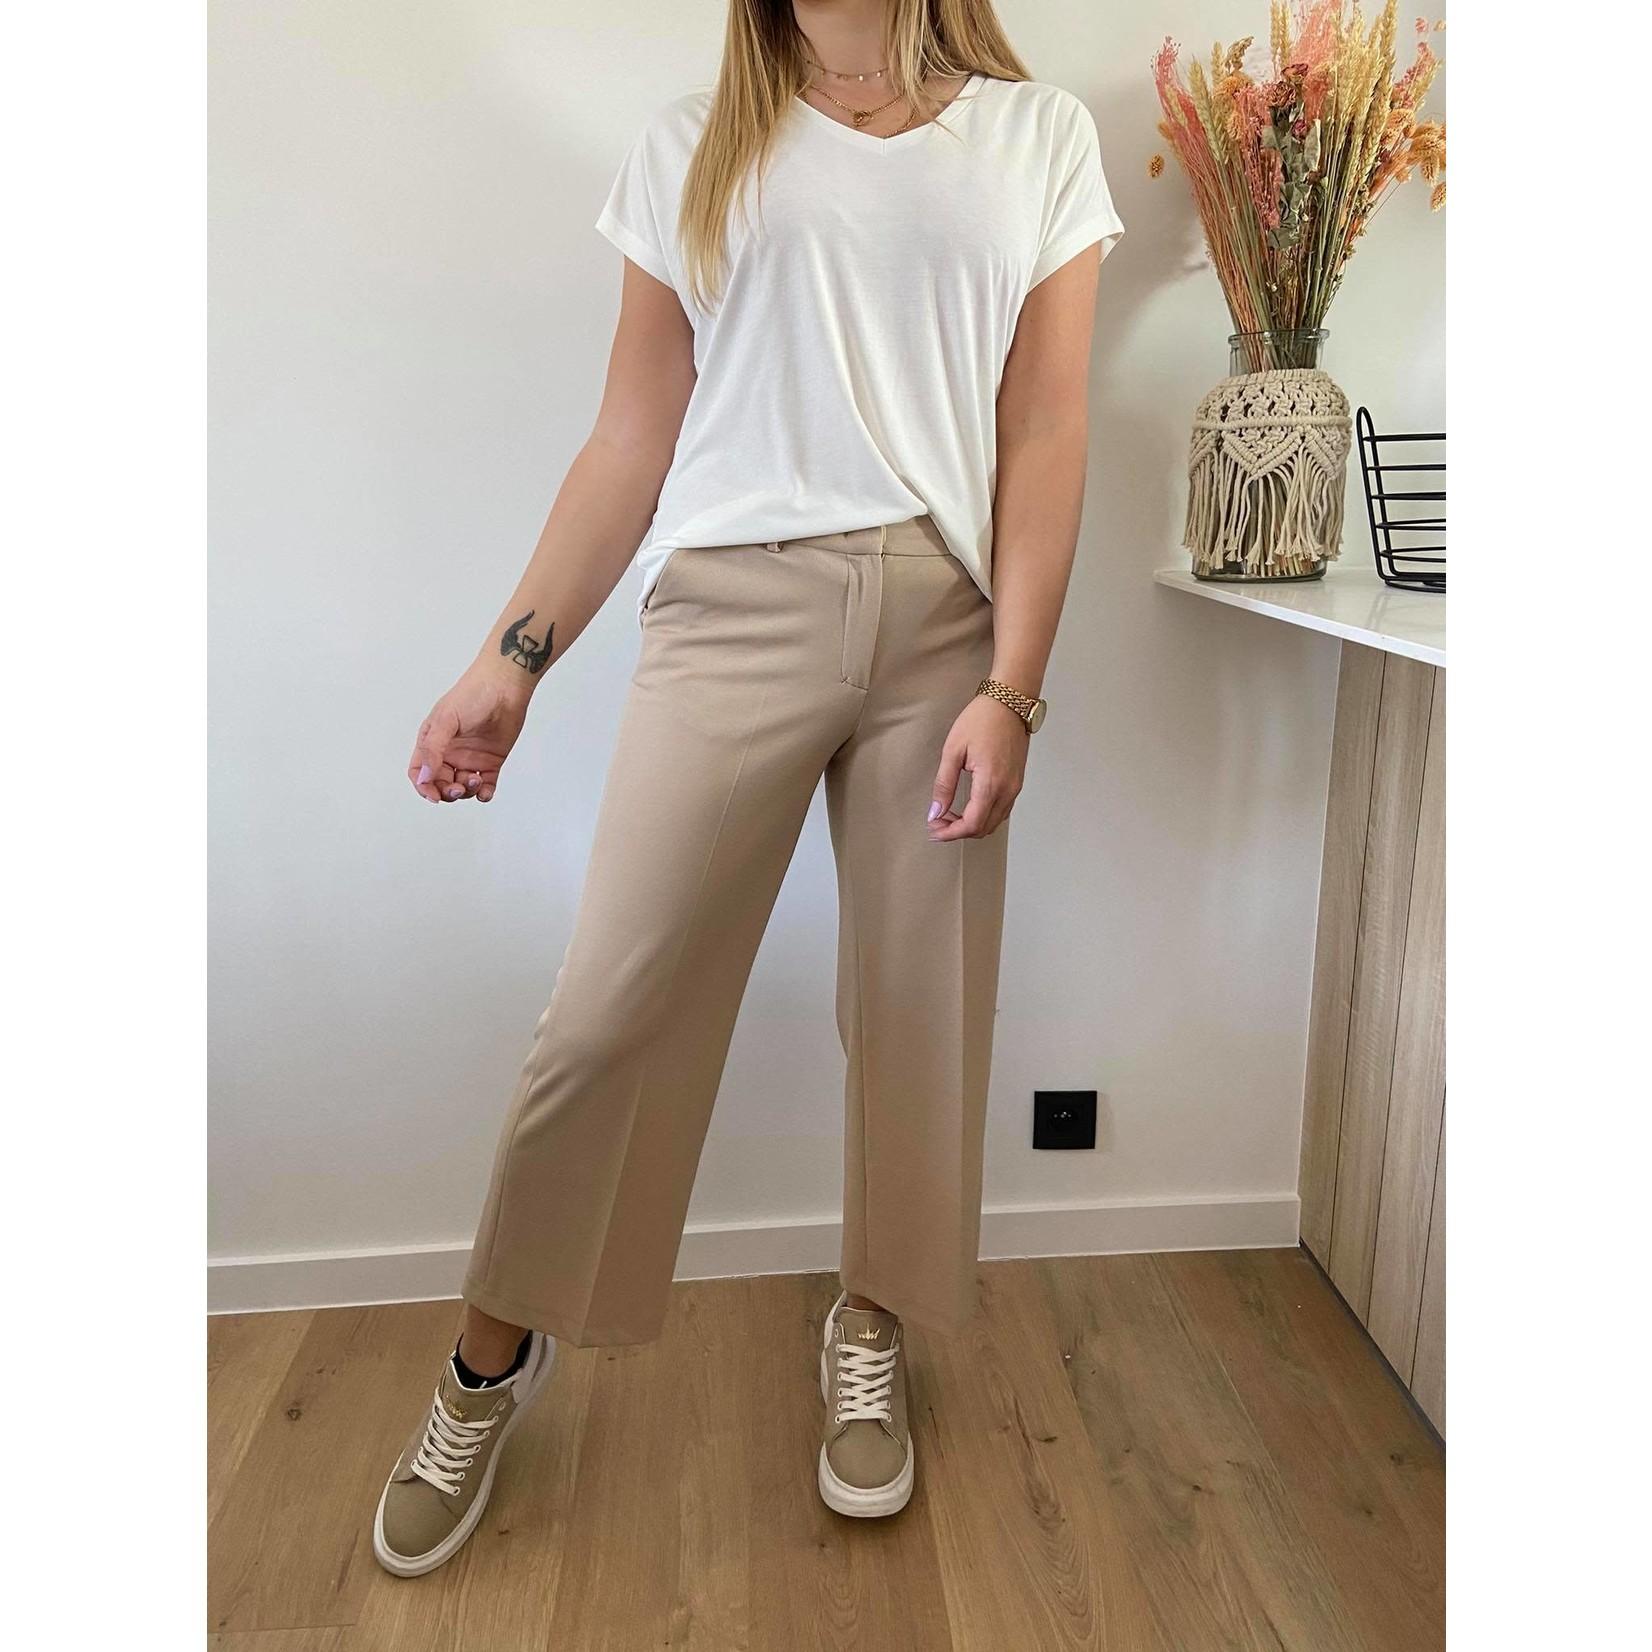 Trouser Miracles stetch beige